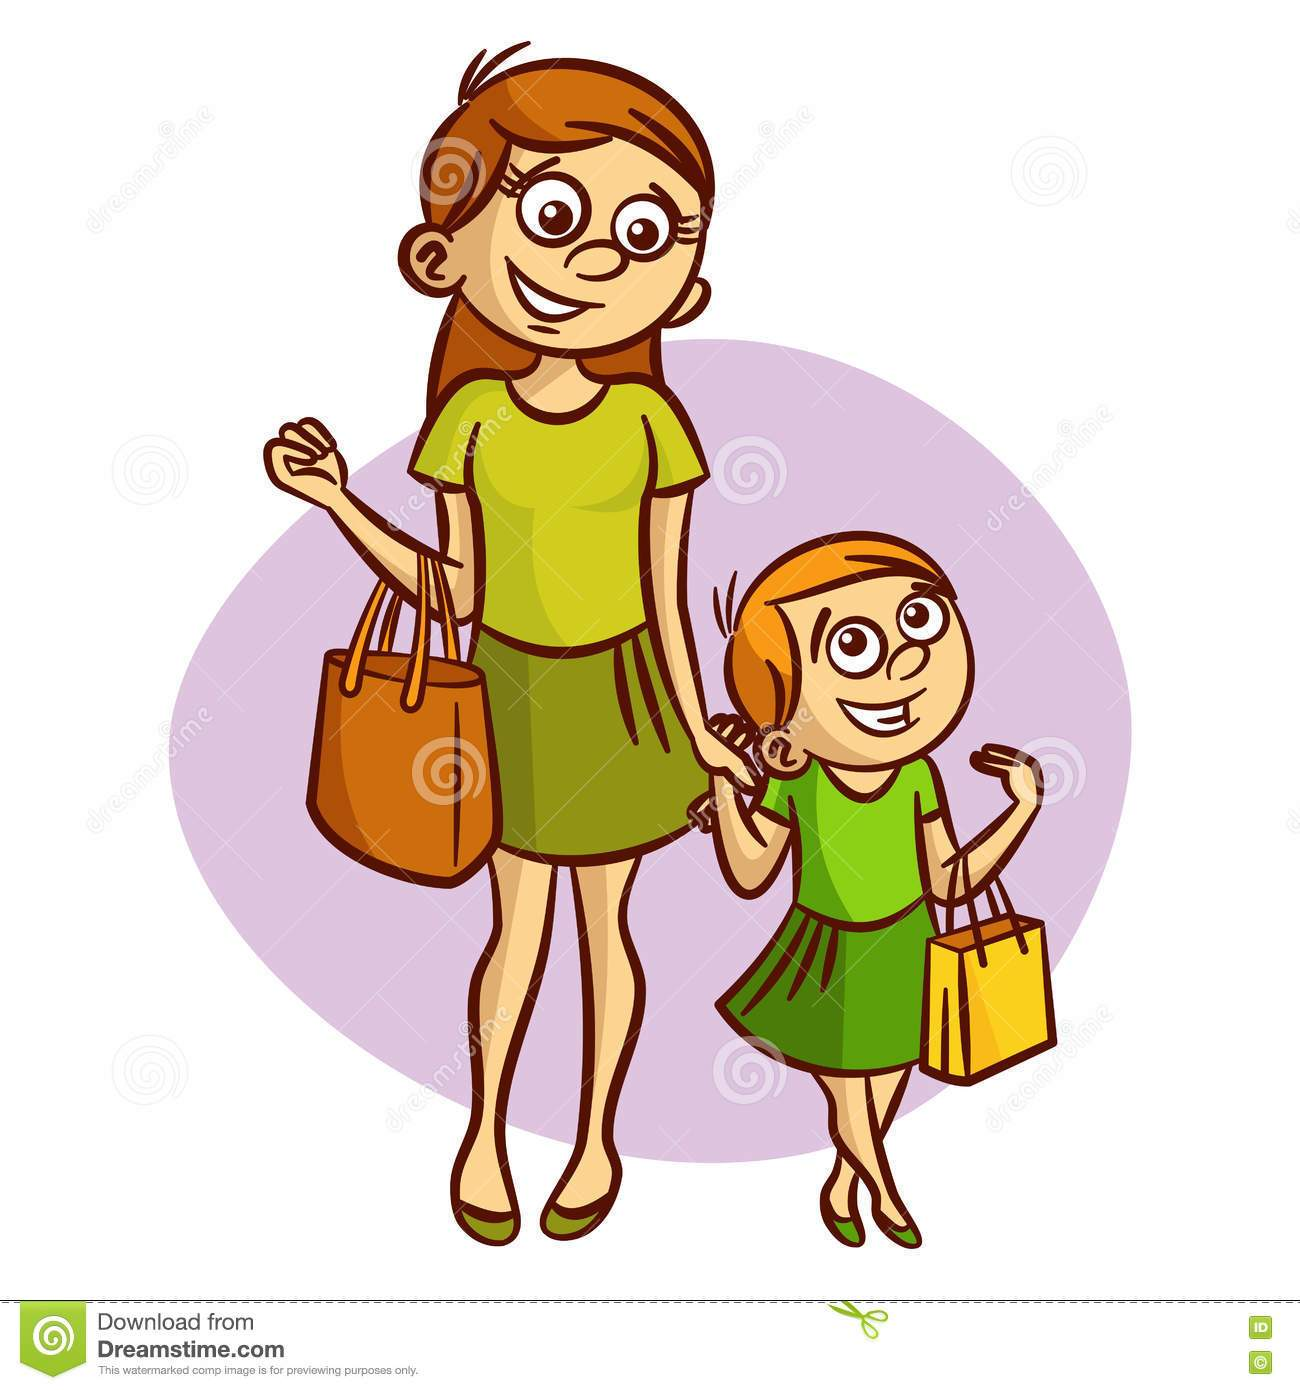 A mom clipart image royalty free stock Little girl and mom clipart 4 » Clipart Portal image royalty free stock